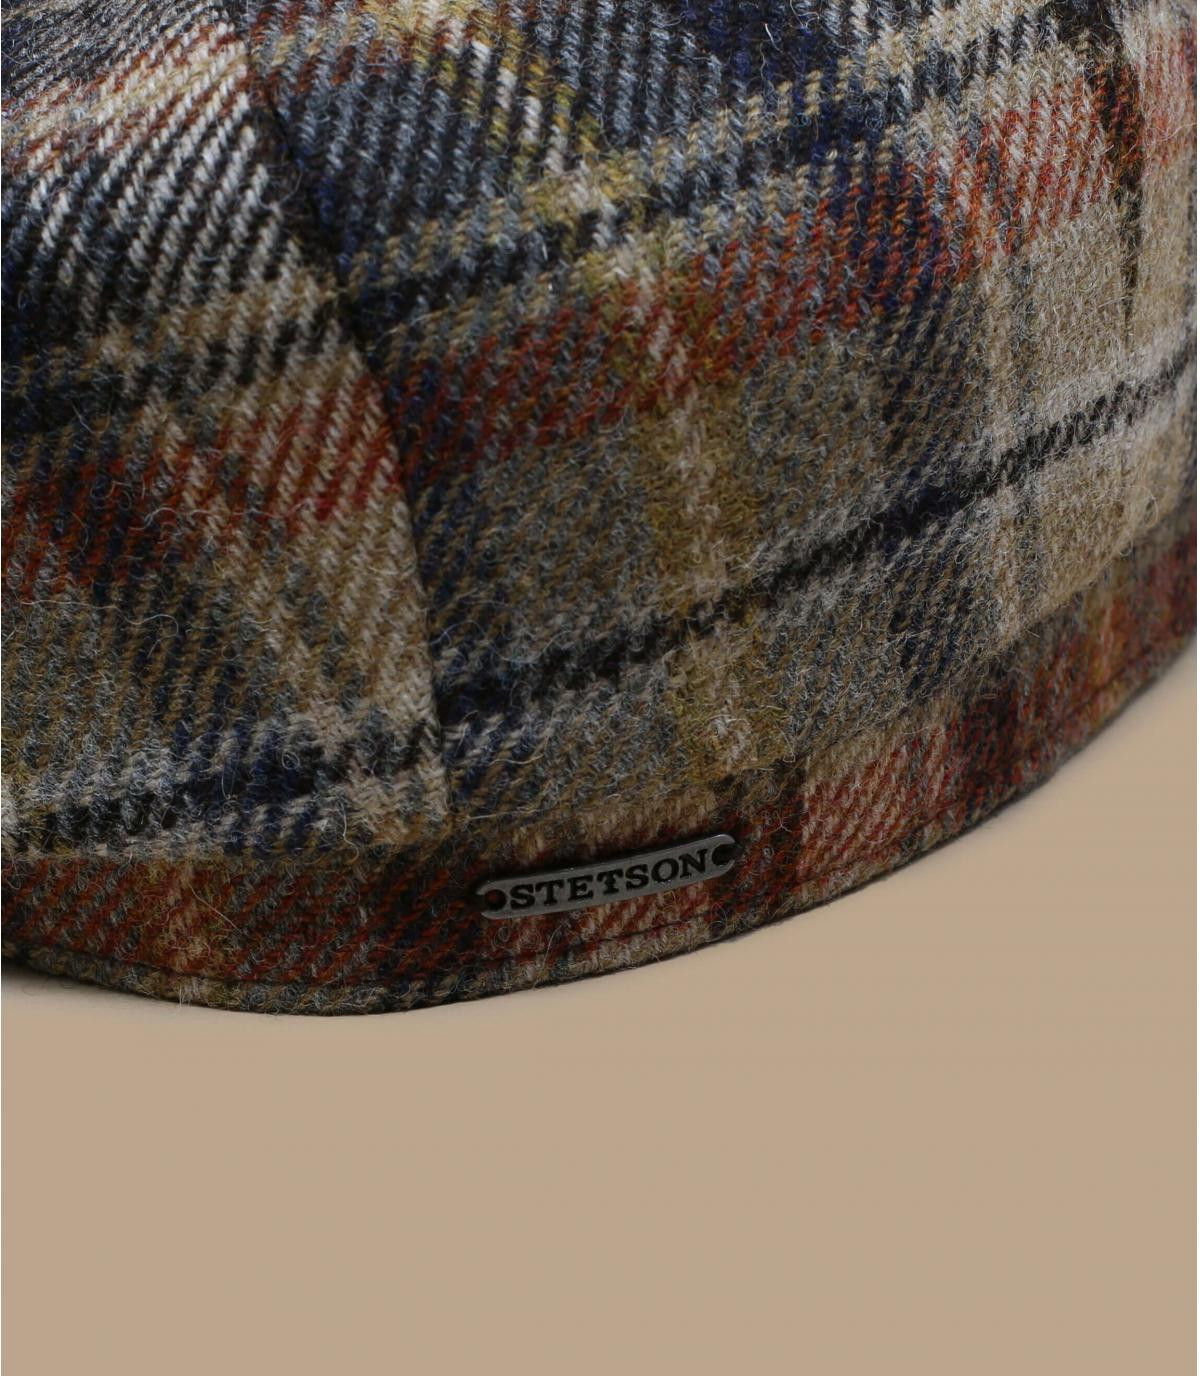 Détails Hatteras Wool Check brown beige - image 2